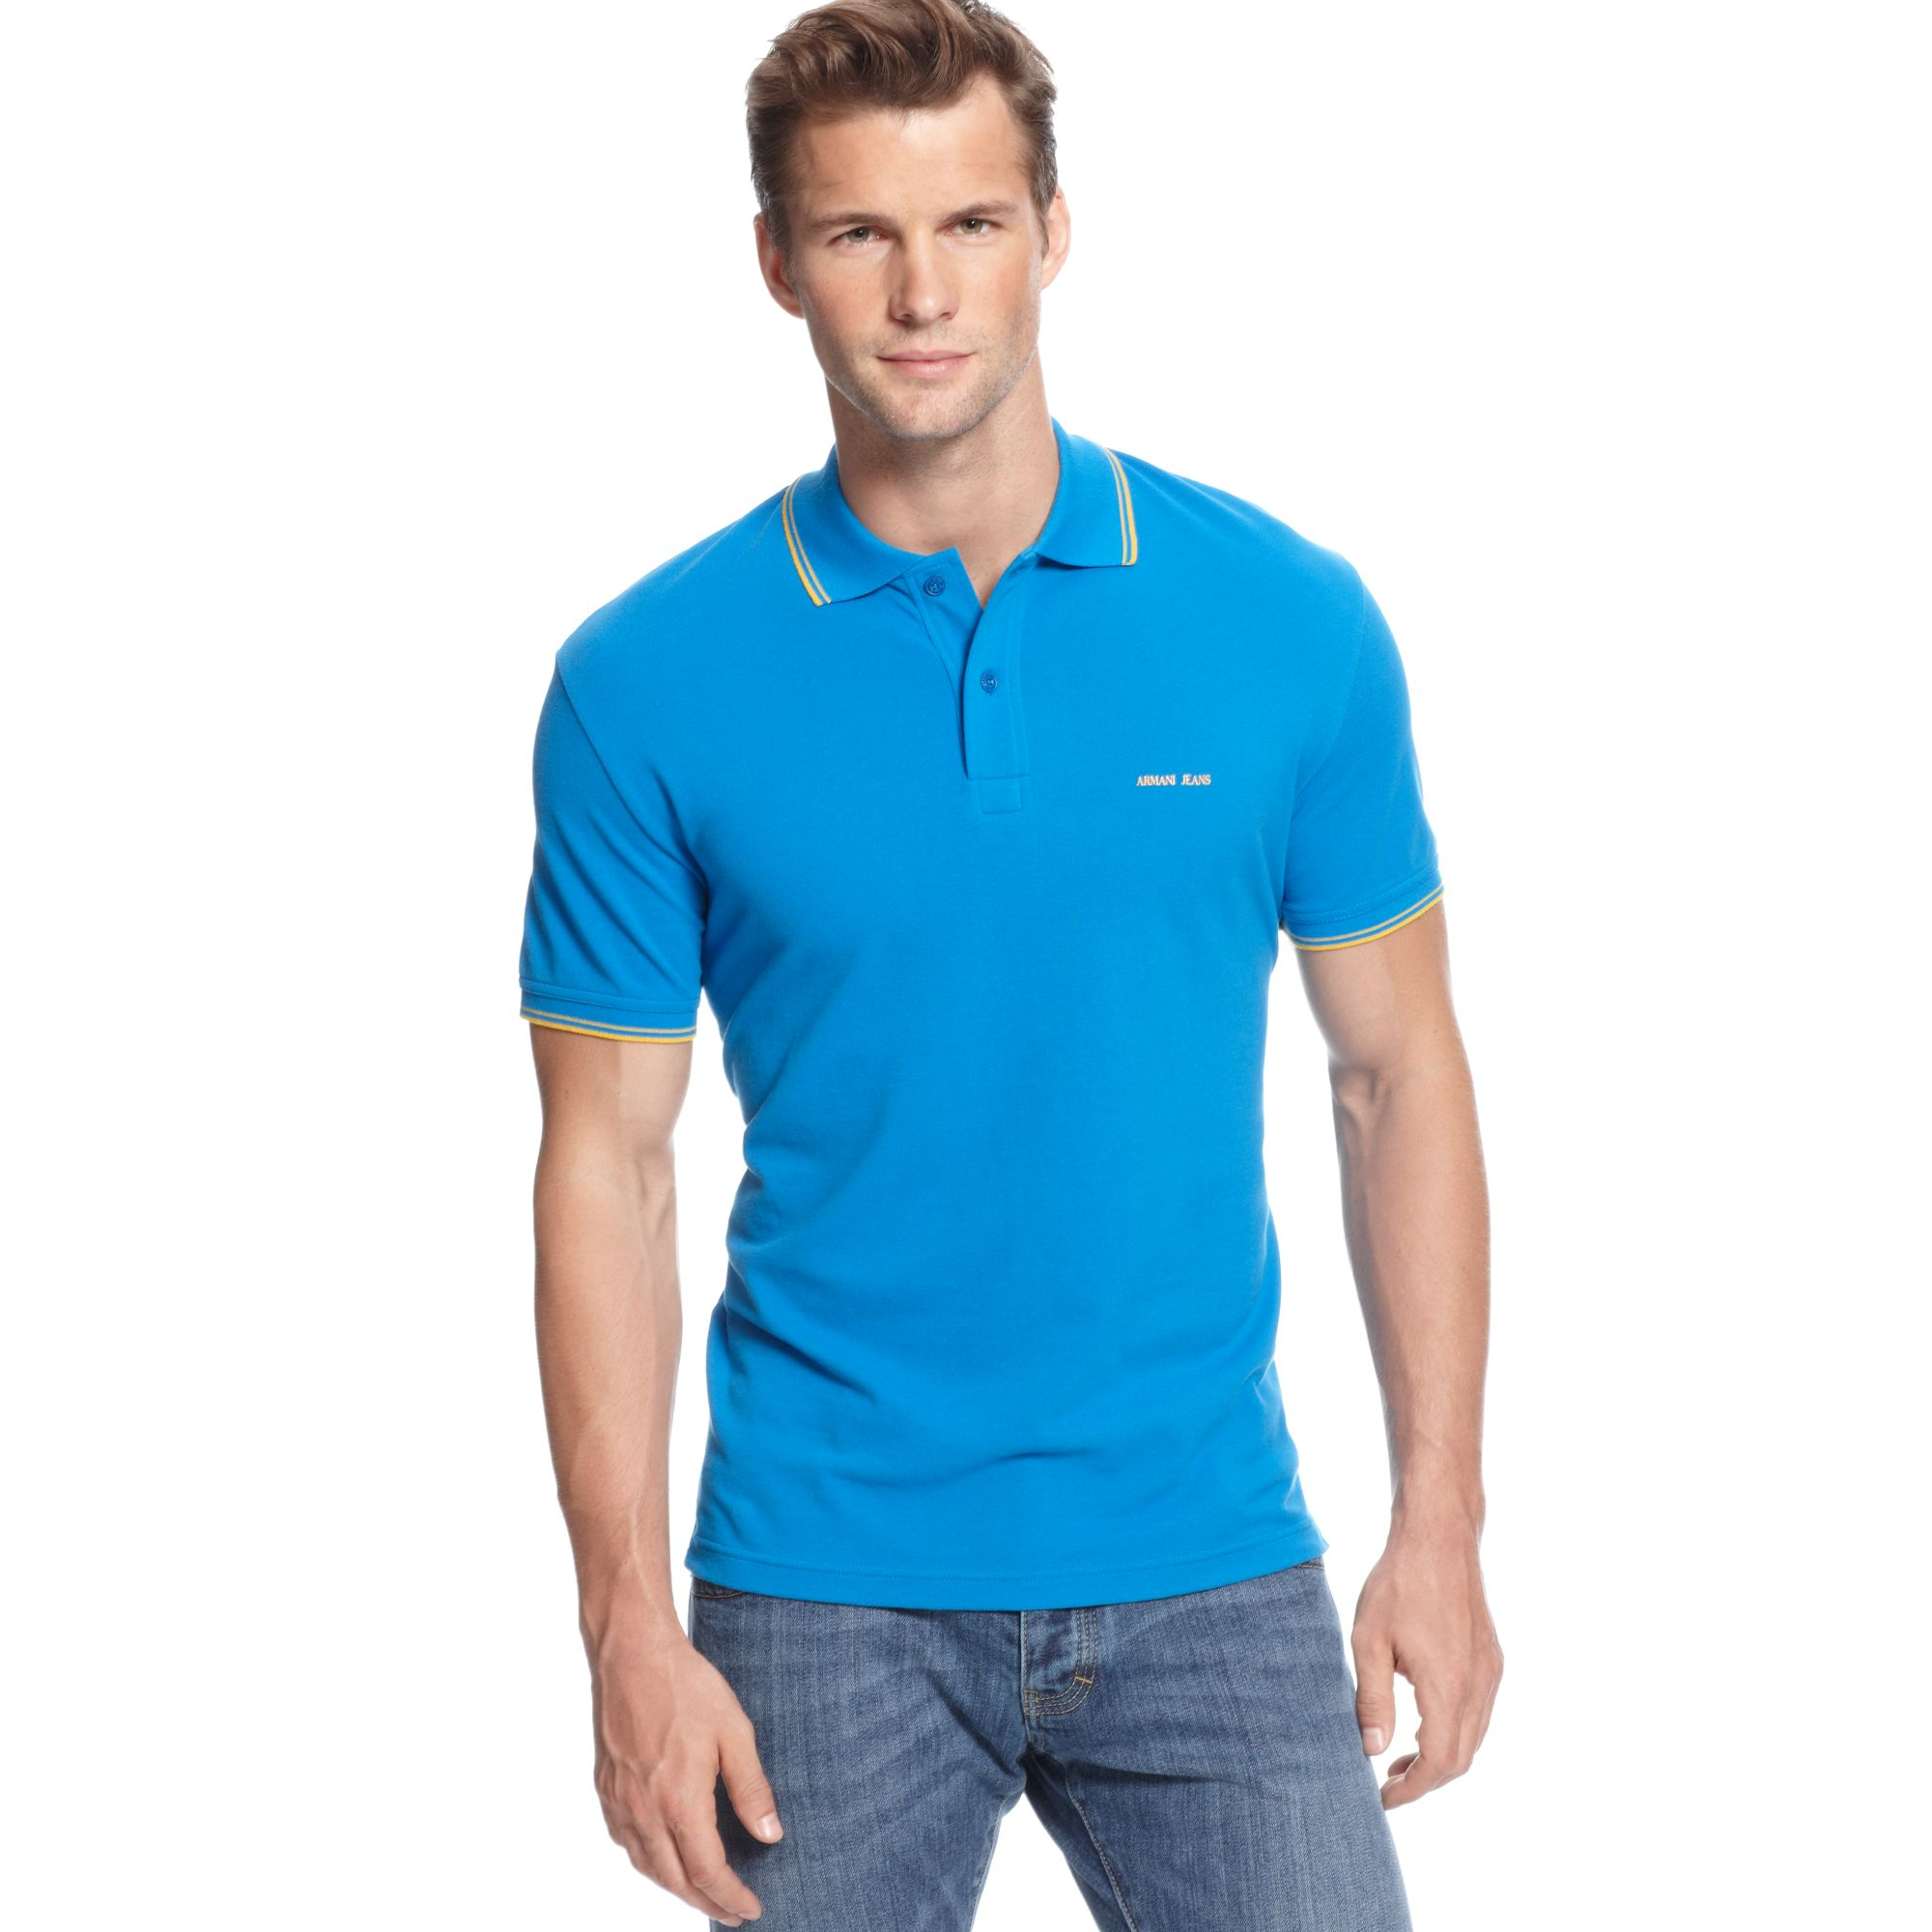 Armani jeans tipped pique polo shirt in blue for men lyst for Polo shirt and jeans